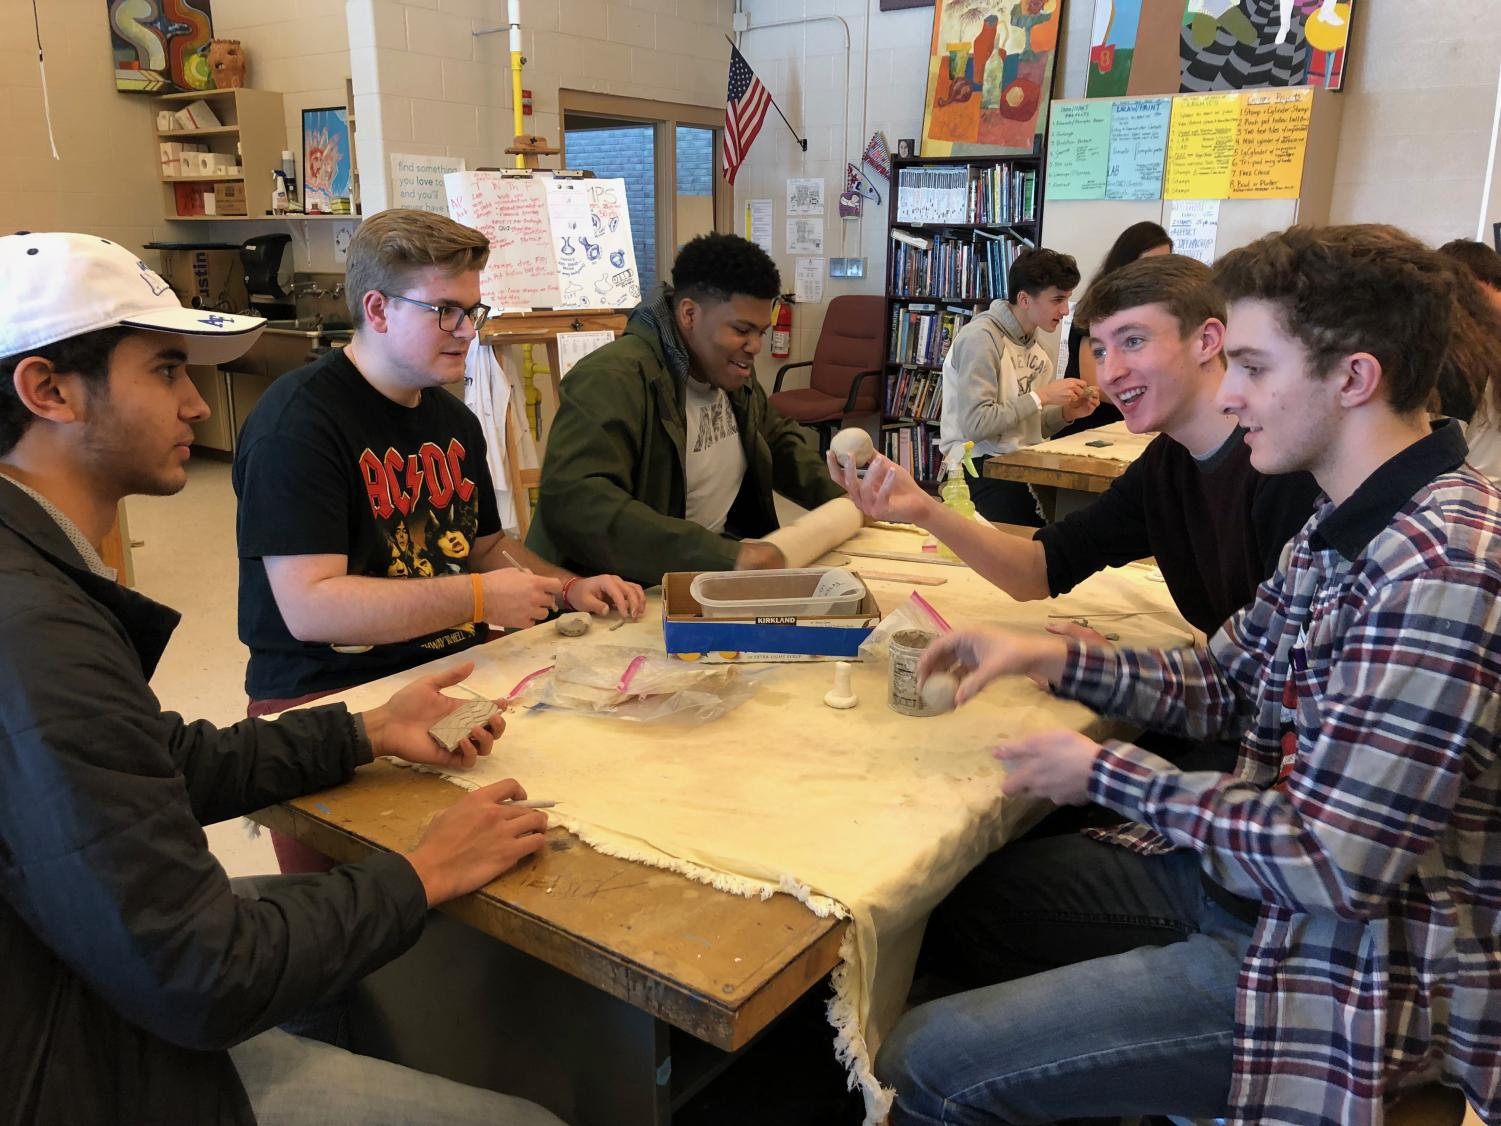 Adams art students working on a ceramics project.